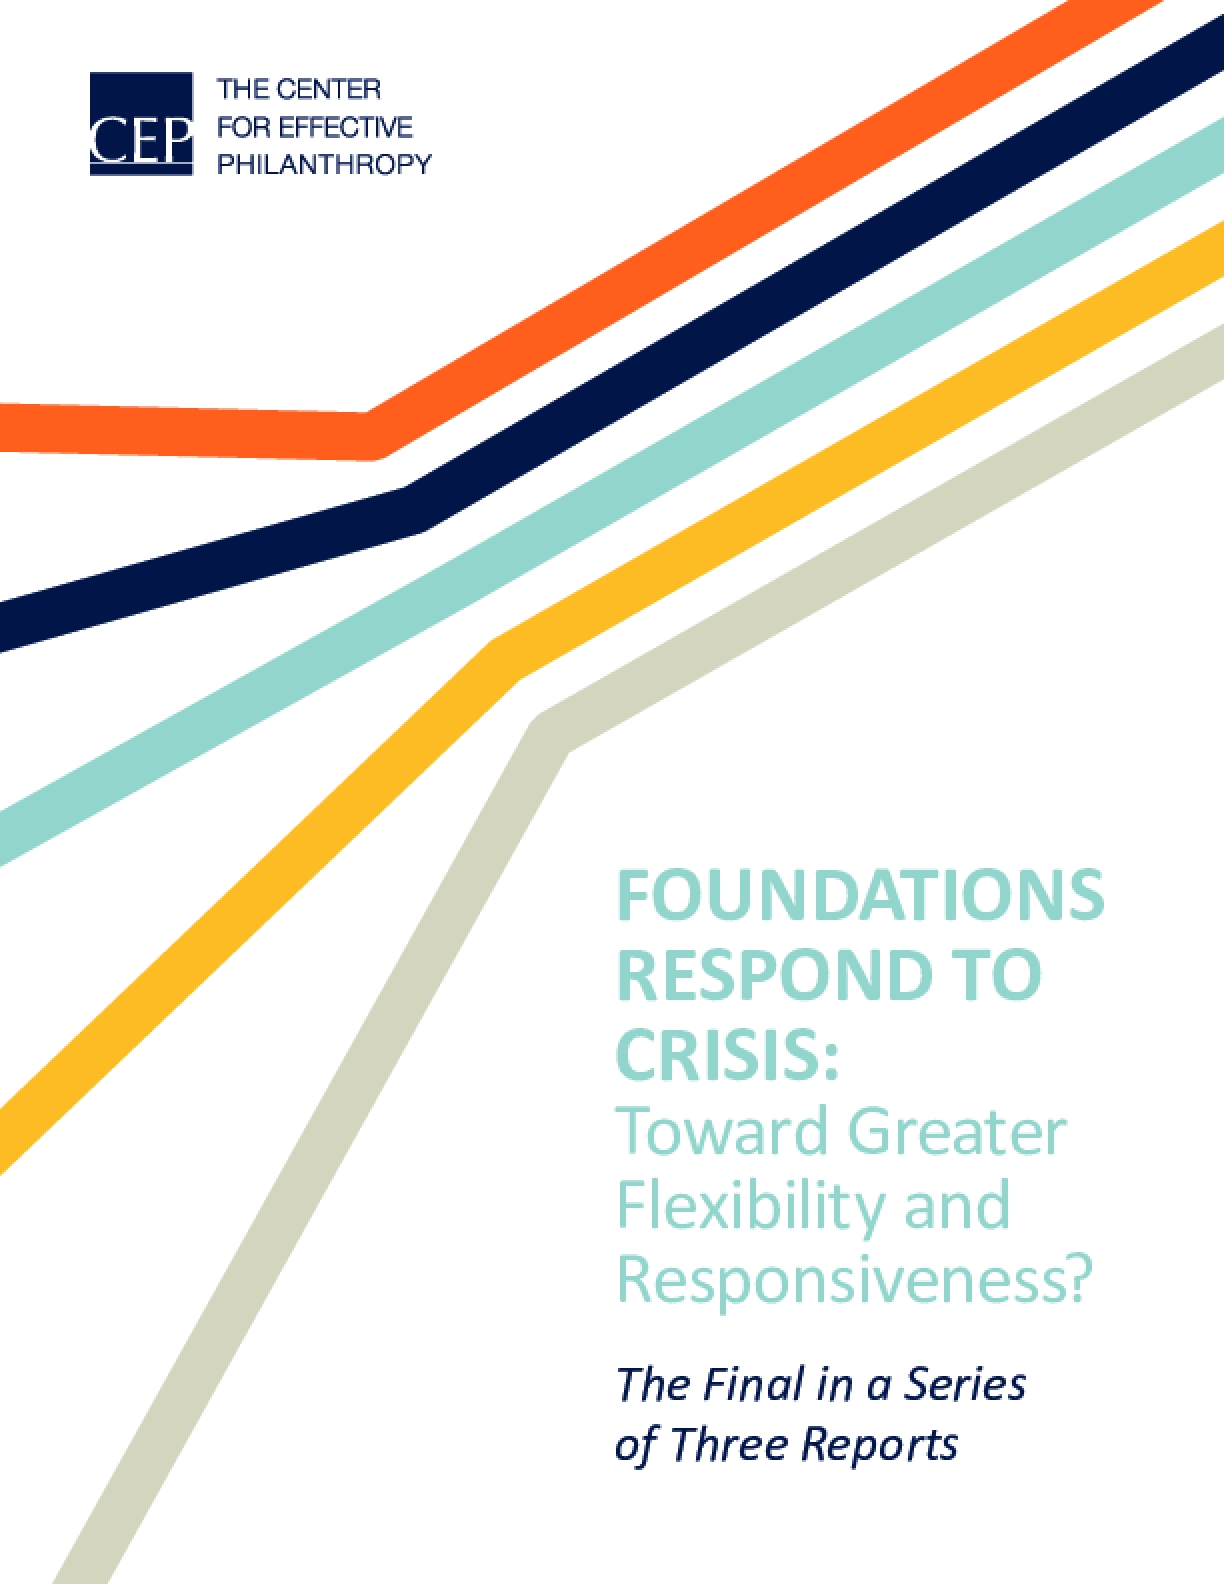 Foundations Respond to Crisis: Toward Greater Flexibility and Responsiveness?